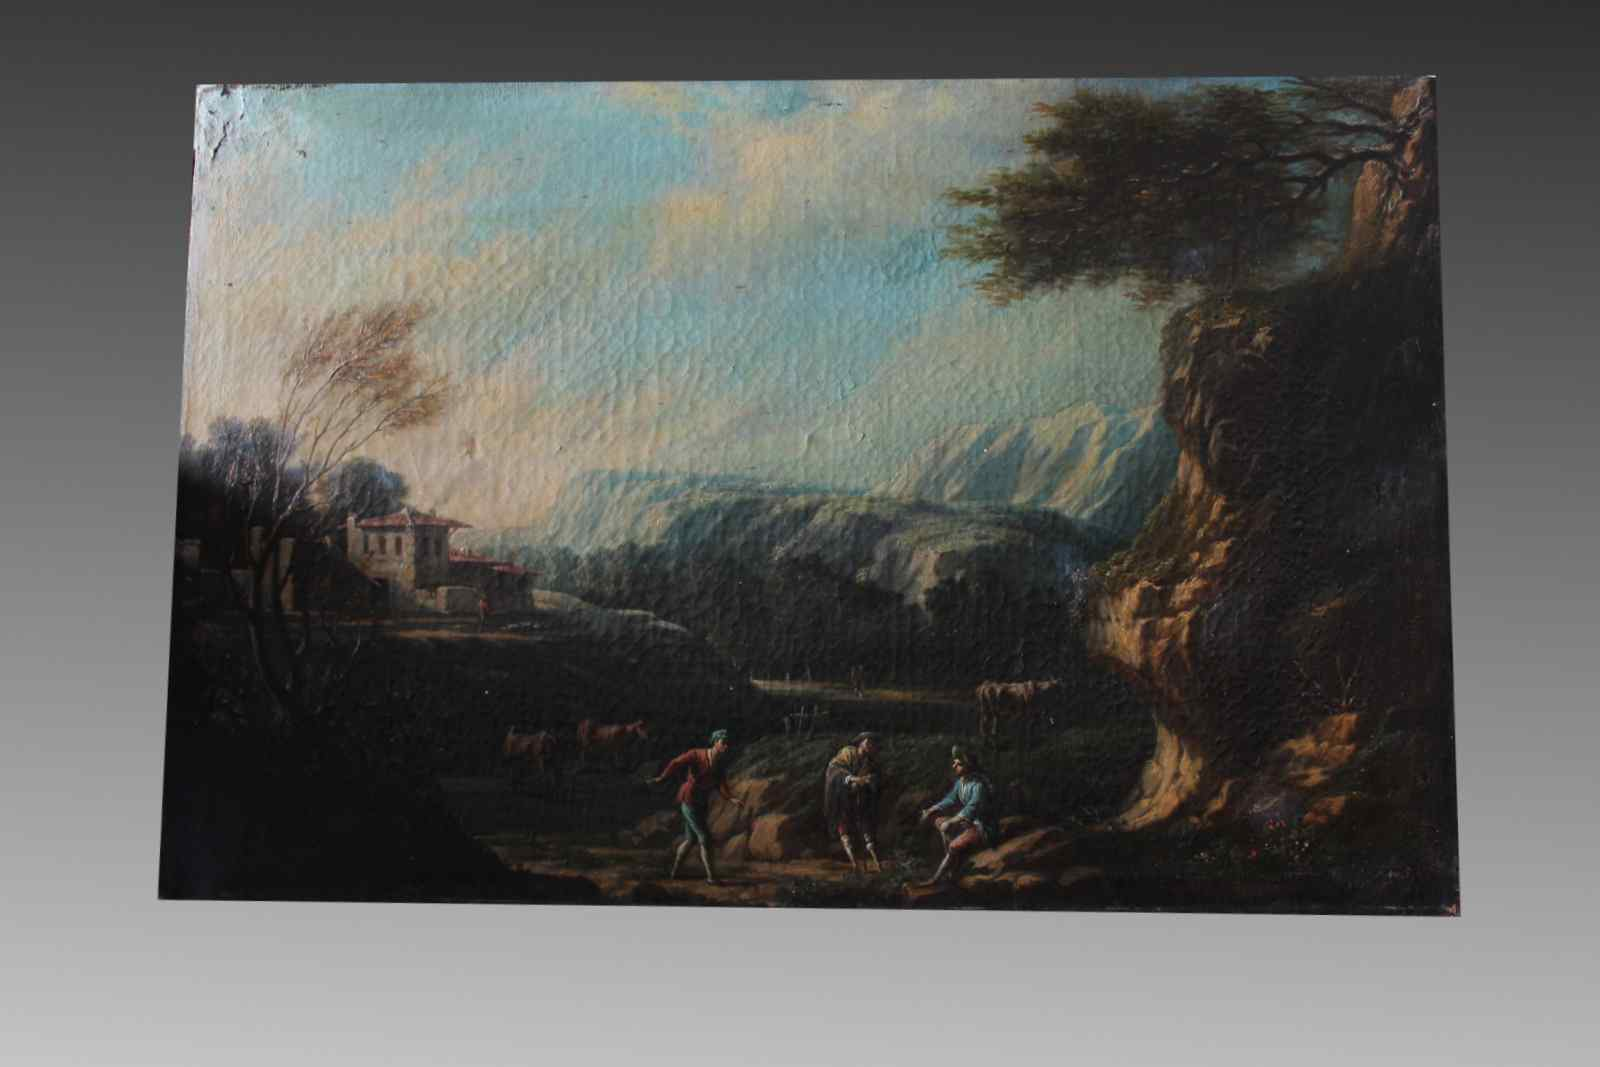 Oil painting on canvas depicting a scene of country life